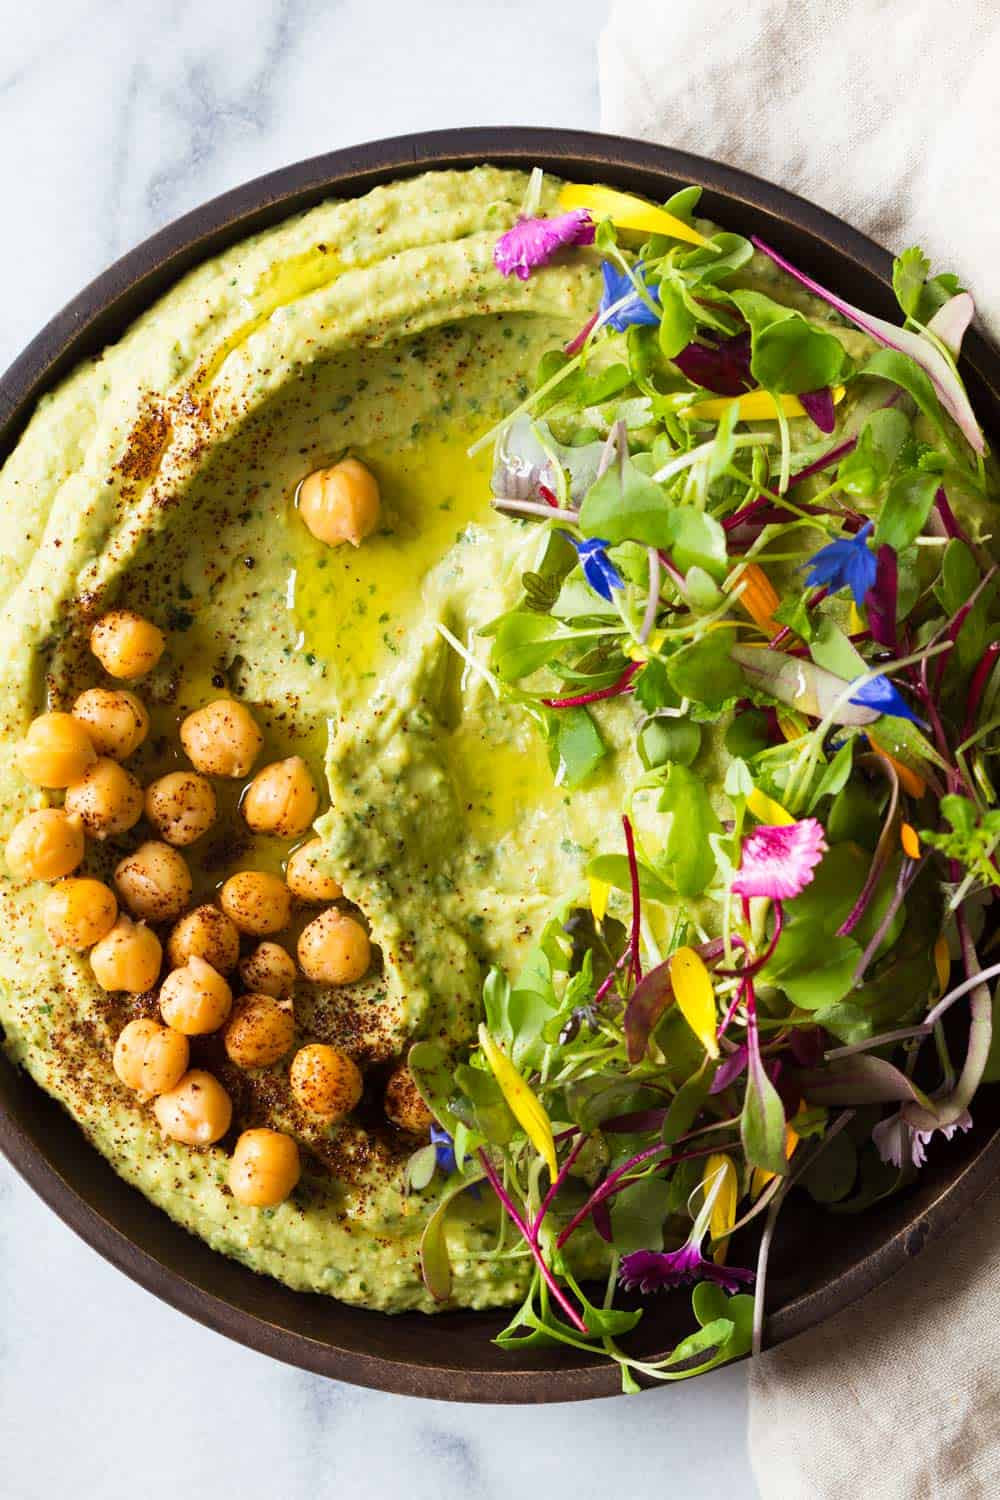 Spicy avocado hummus